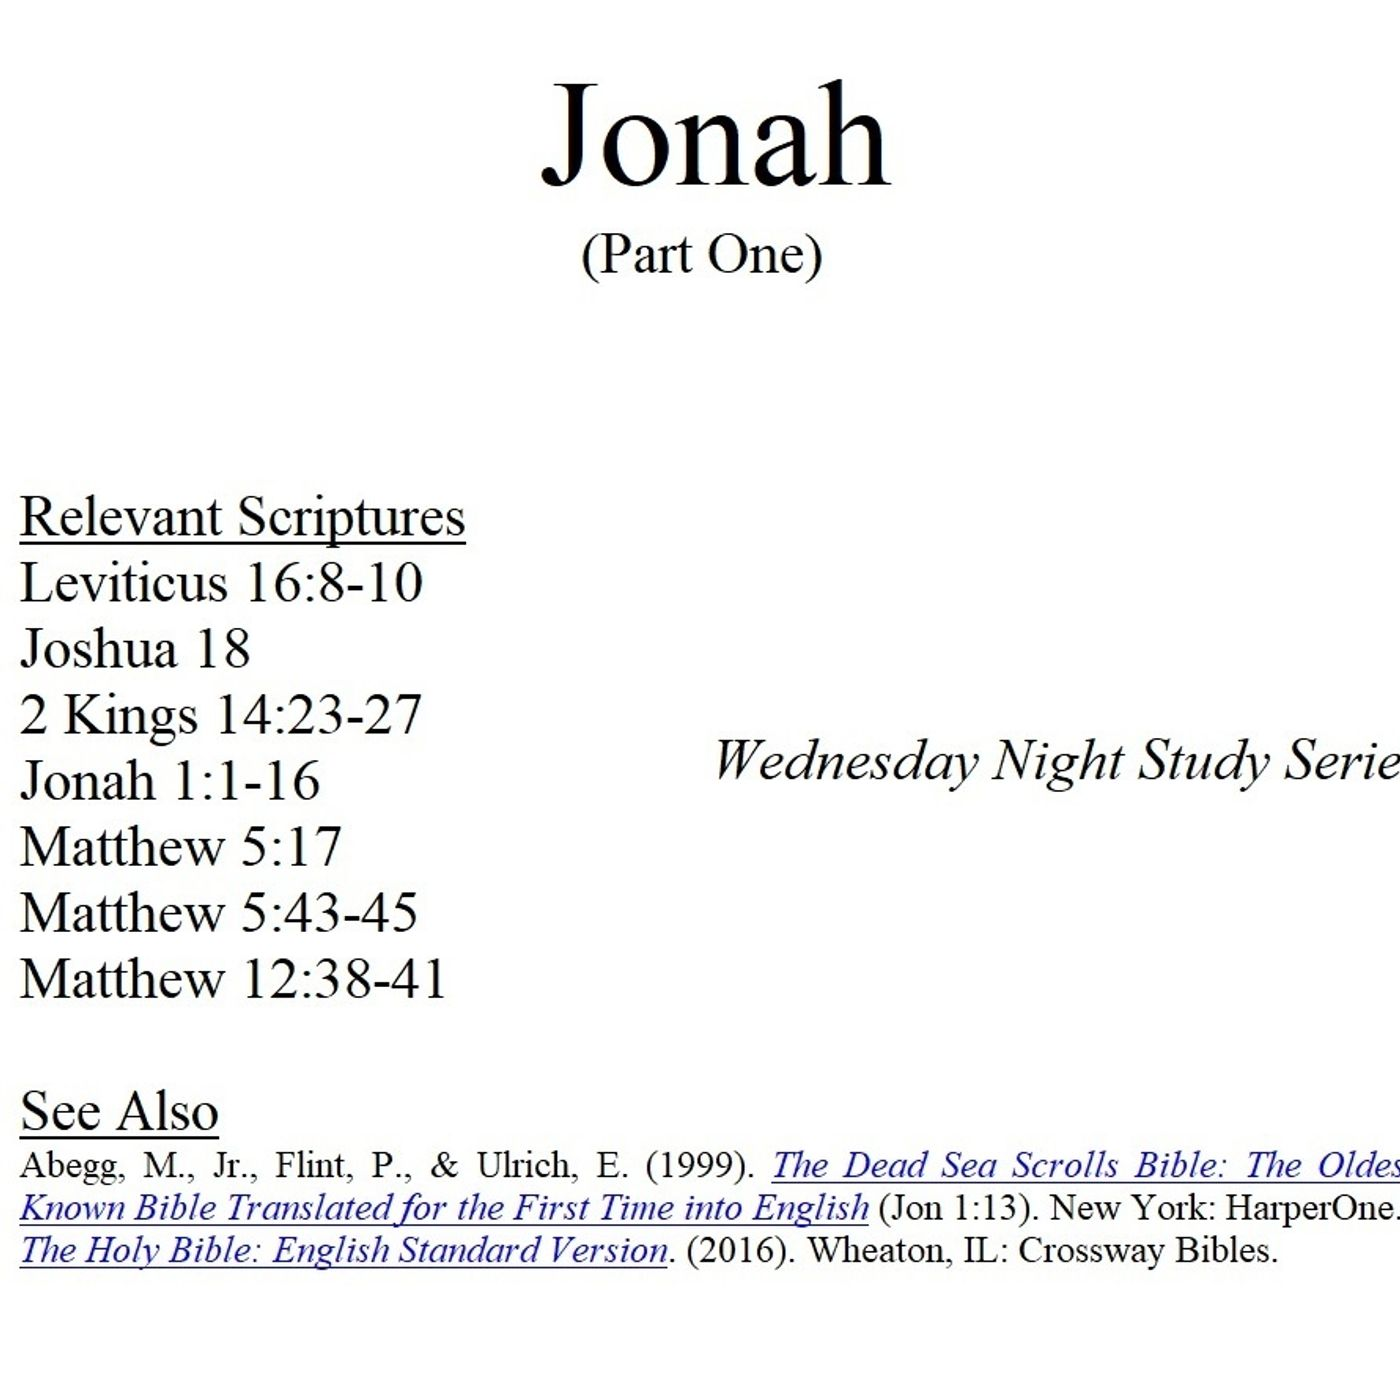 Wednesday Night Study Series - Jonah Part 1 - Jonah Runs, Mariners Convert